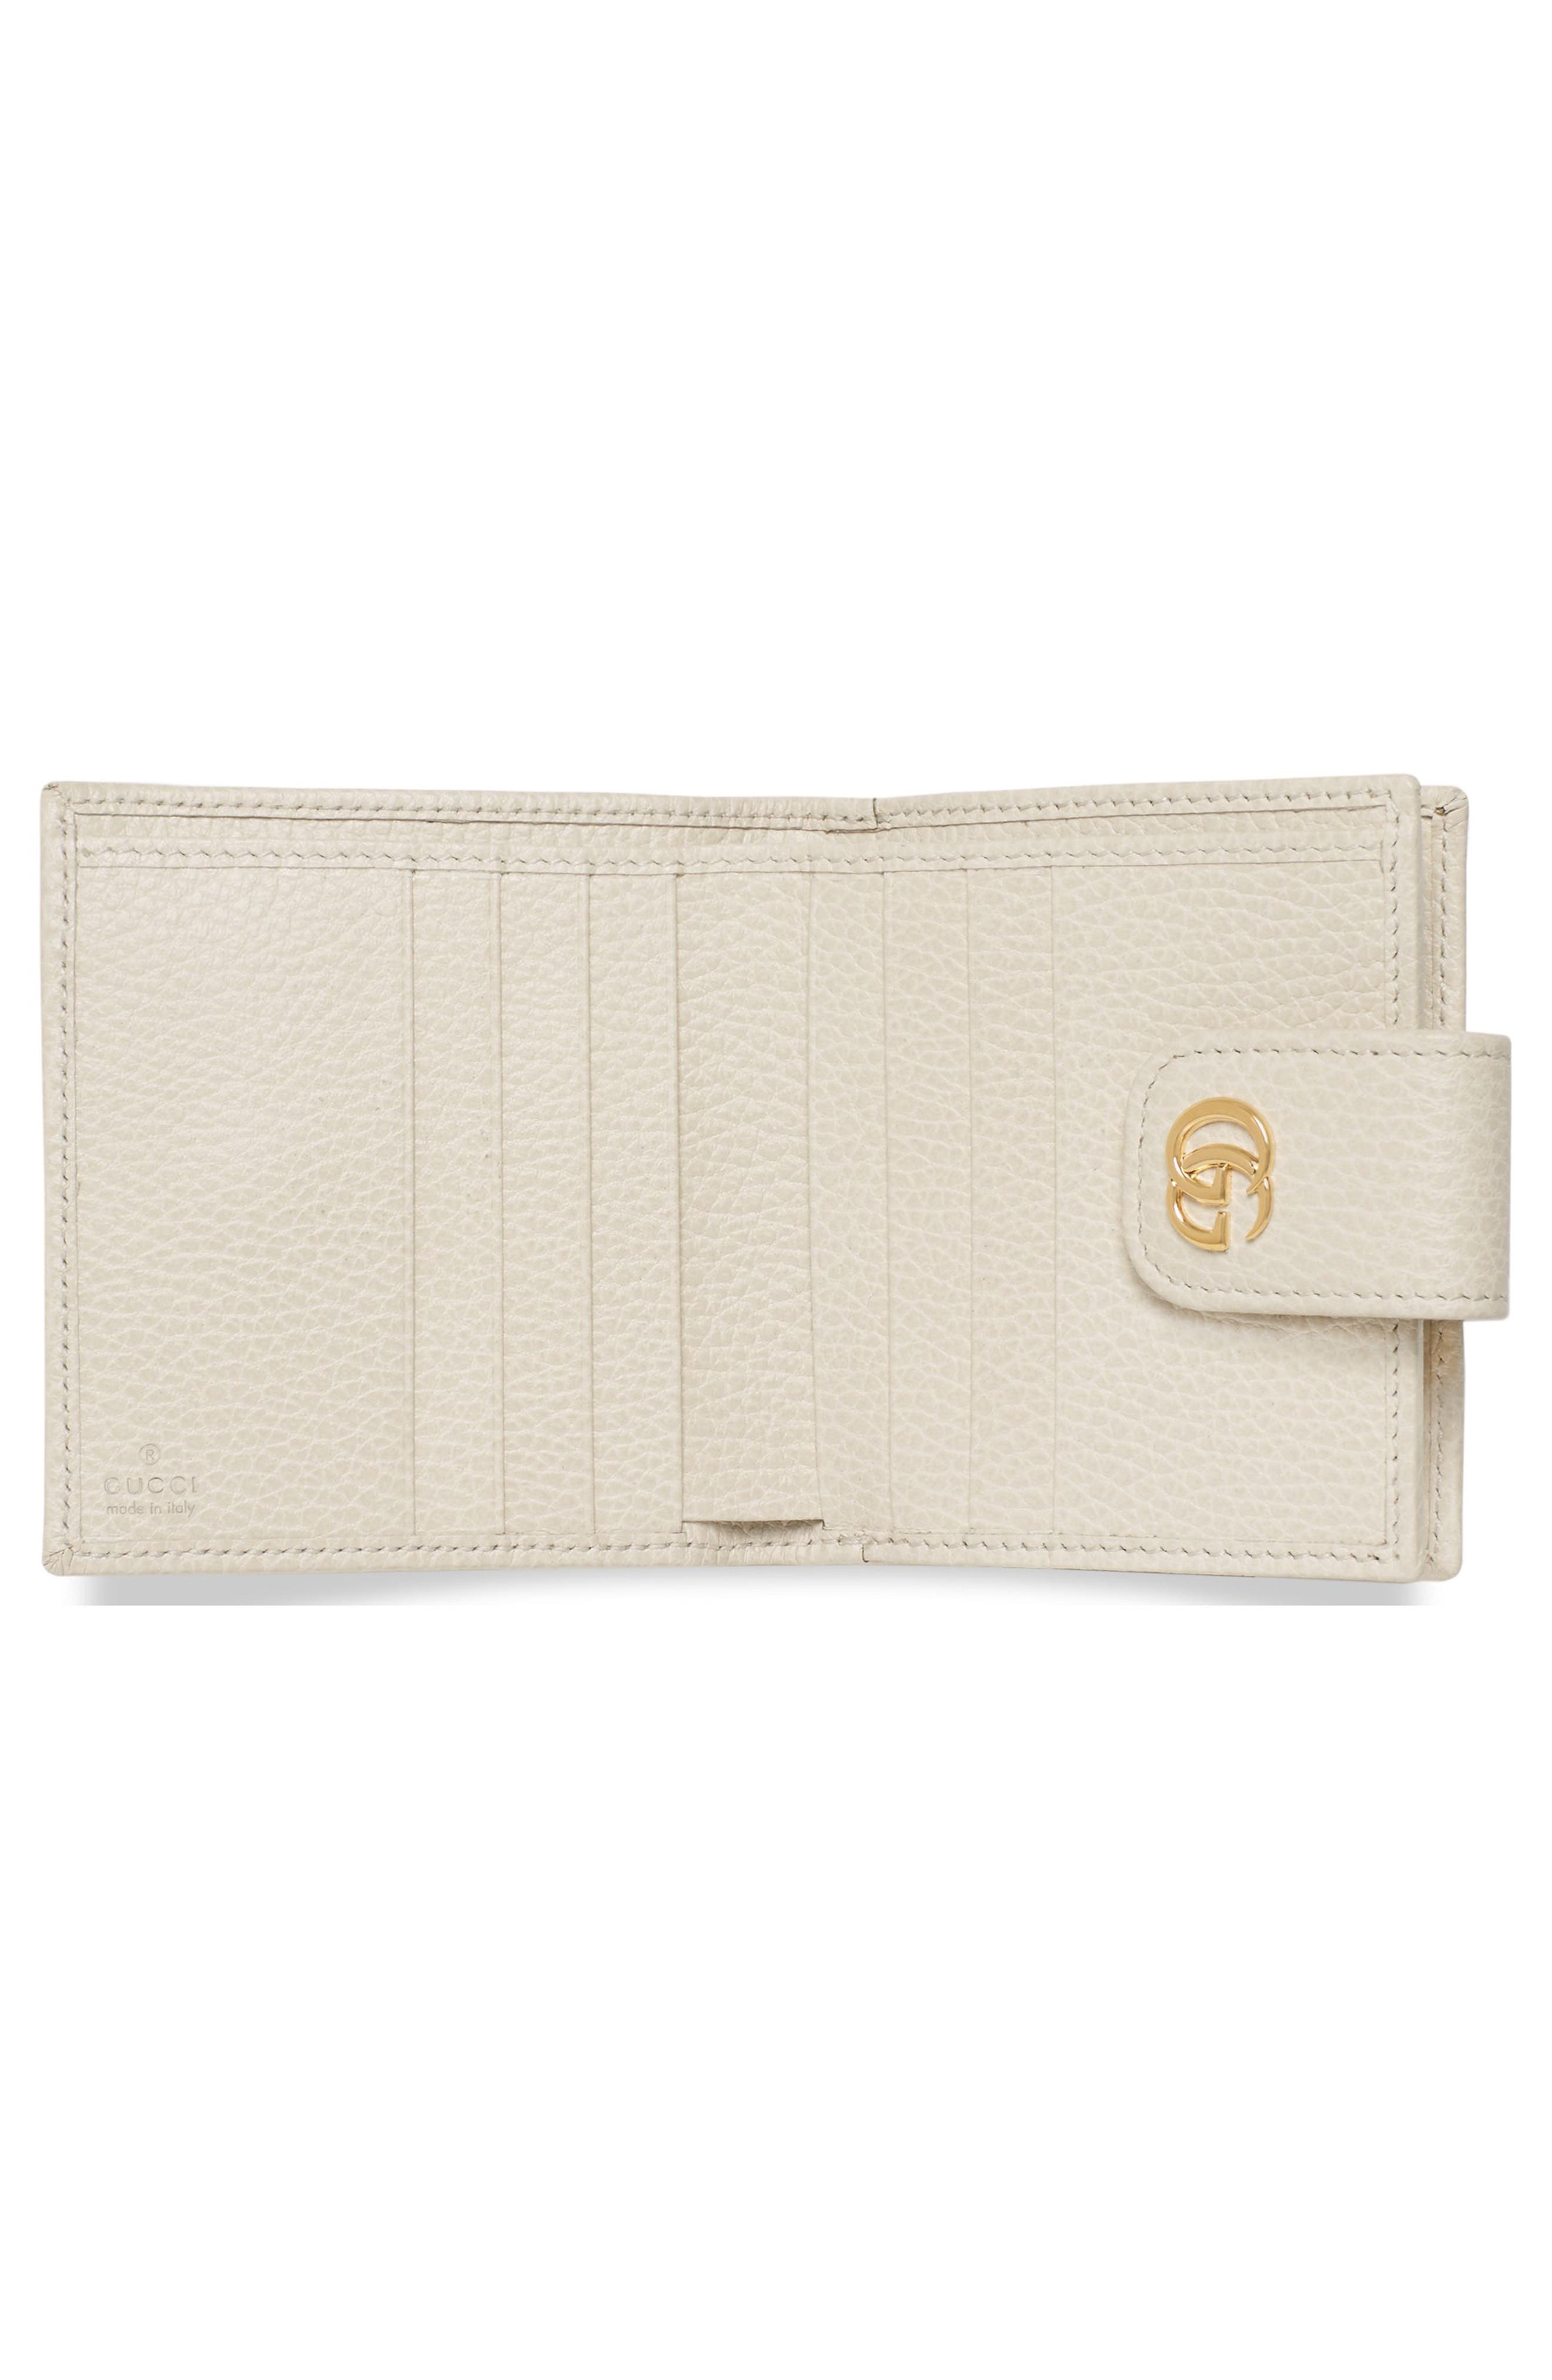 GG Marmont Leather Wallet,                             Alternate thumbnail 2, color,                             MYSTIC WHITE